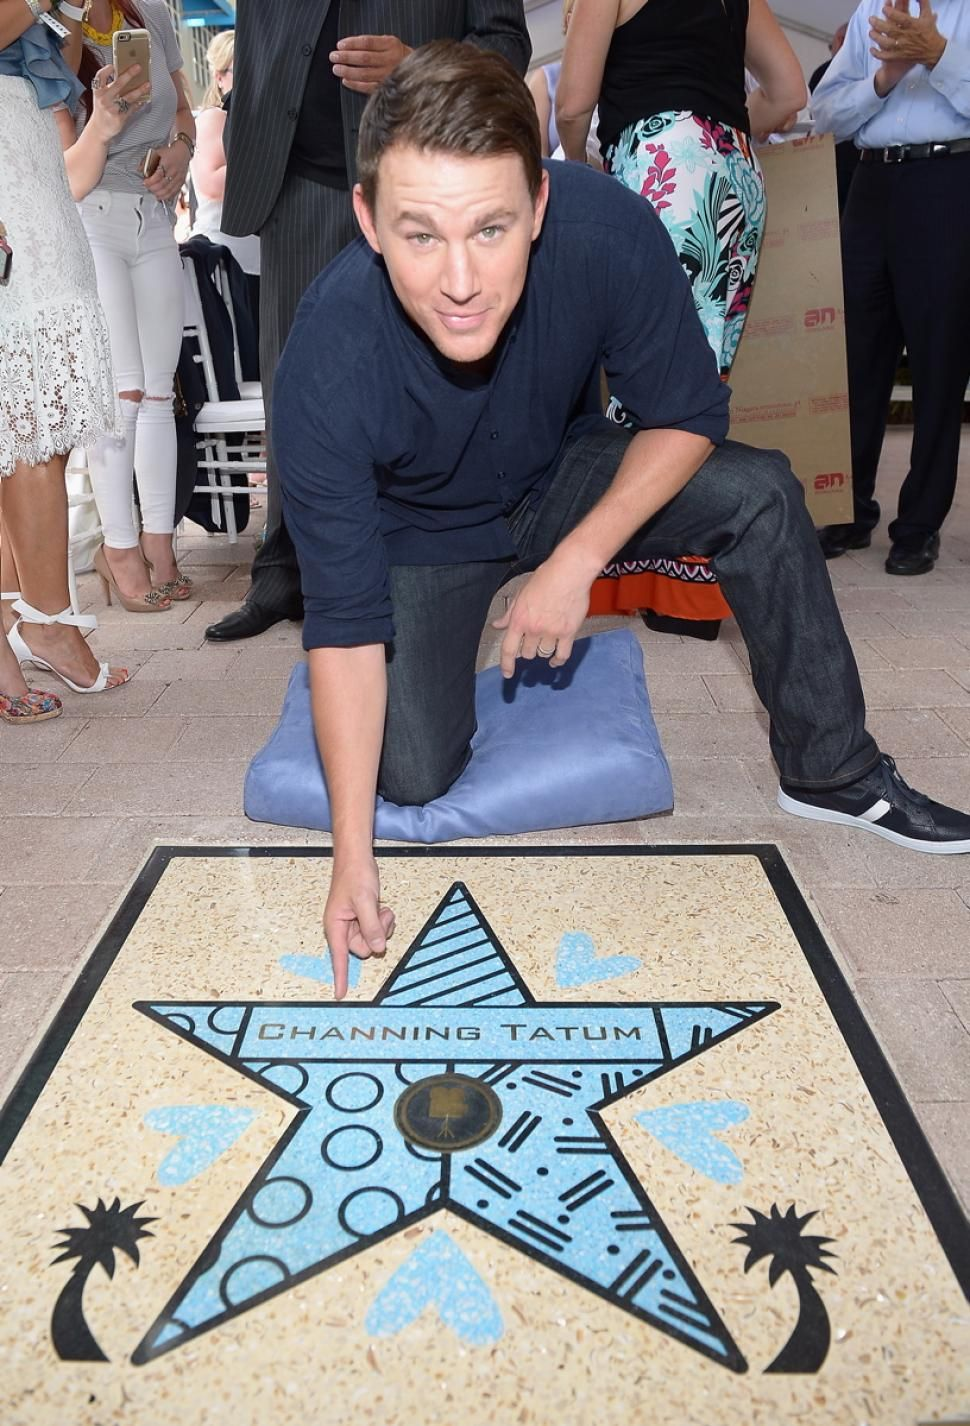 Channing Tatum Wears The Kasama While Receiving His Star On The